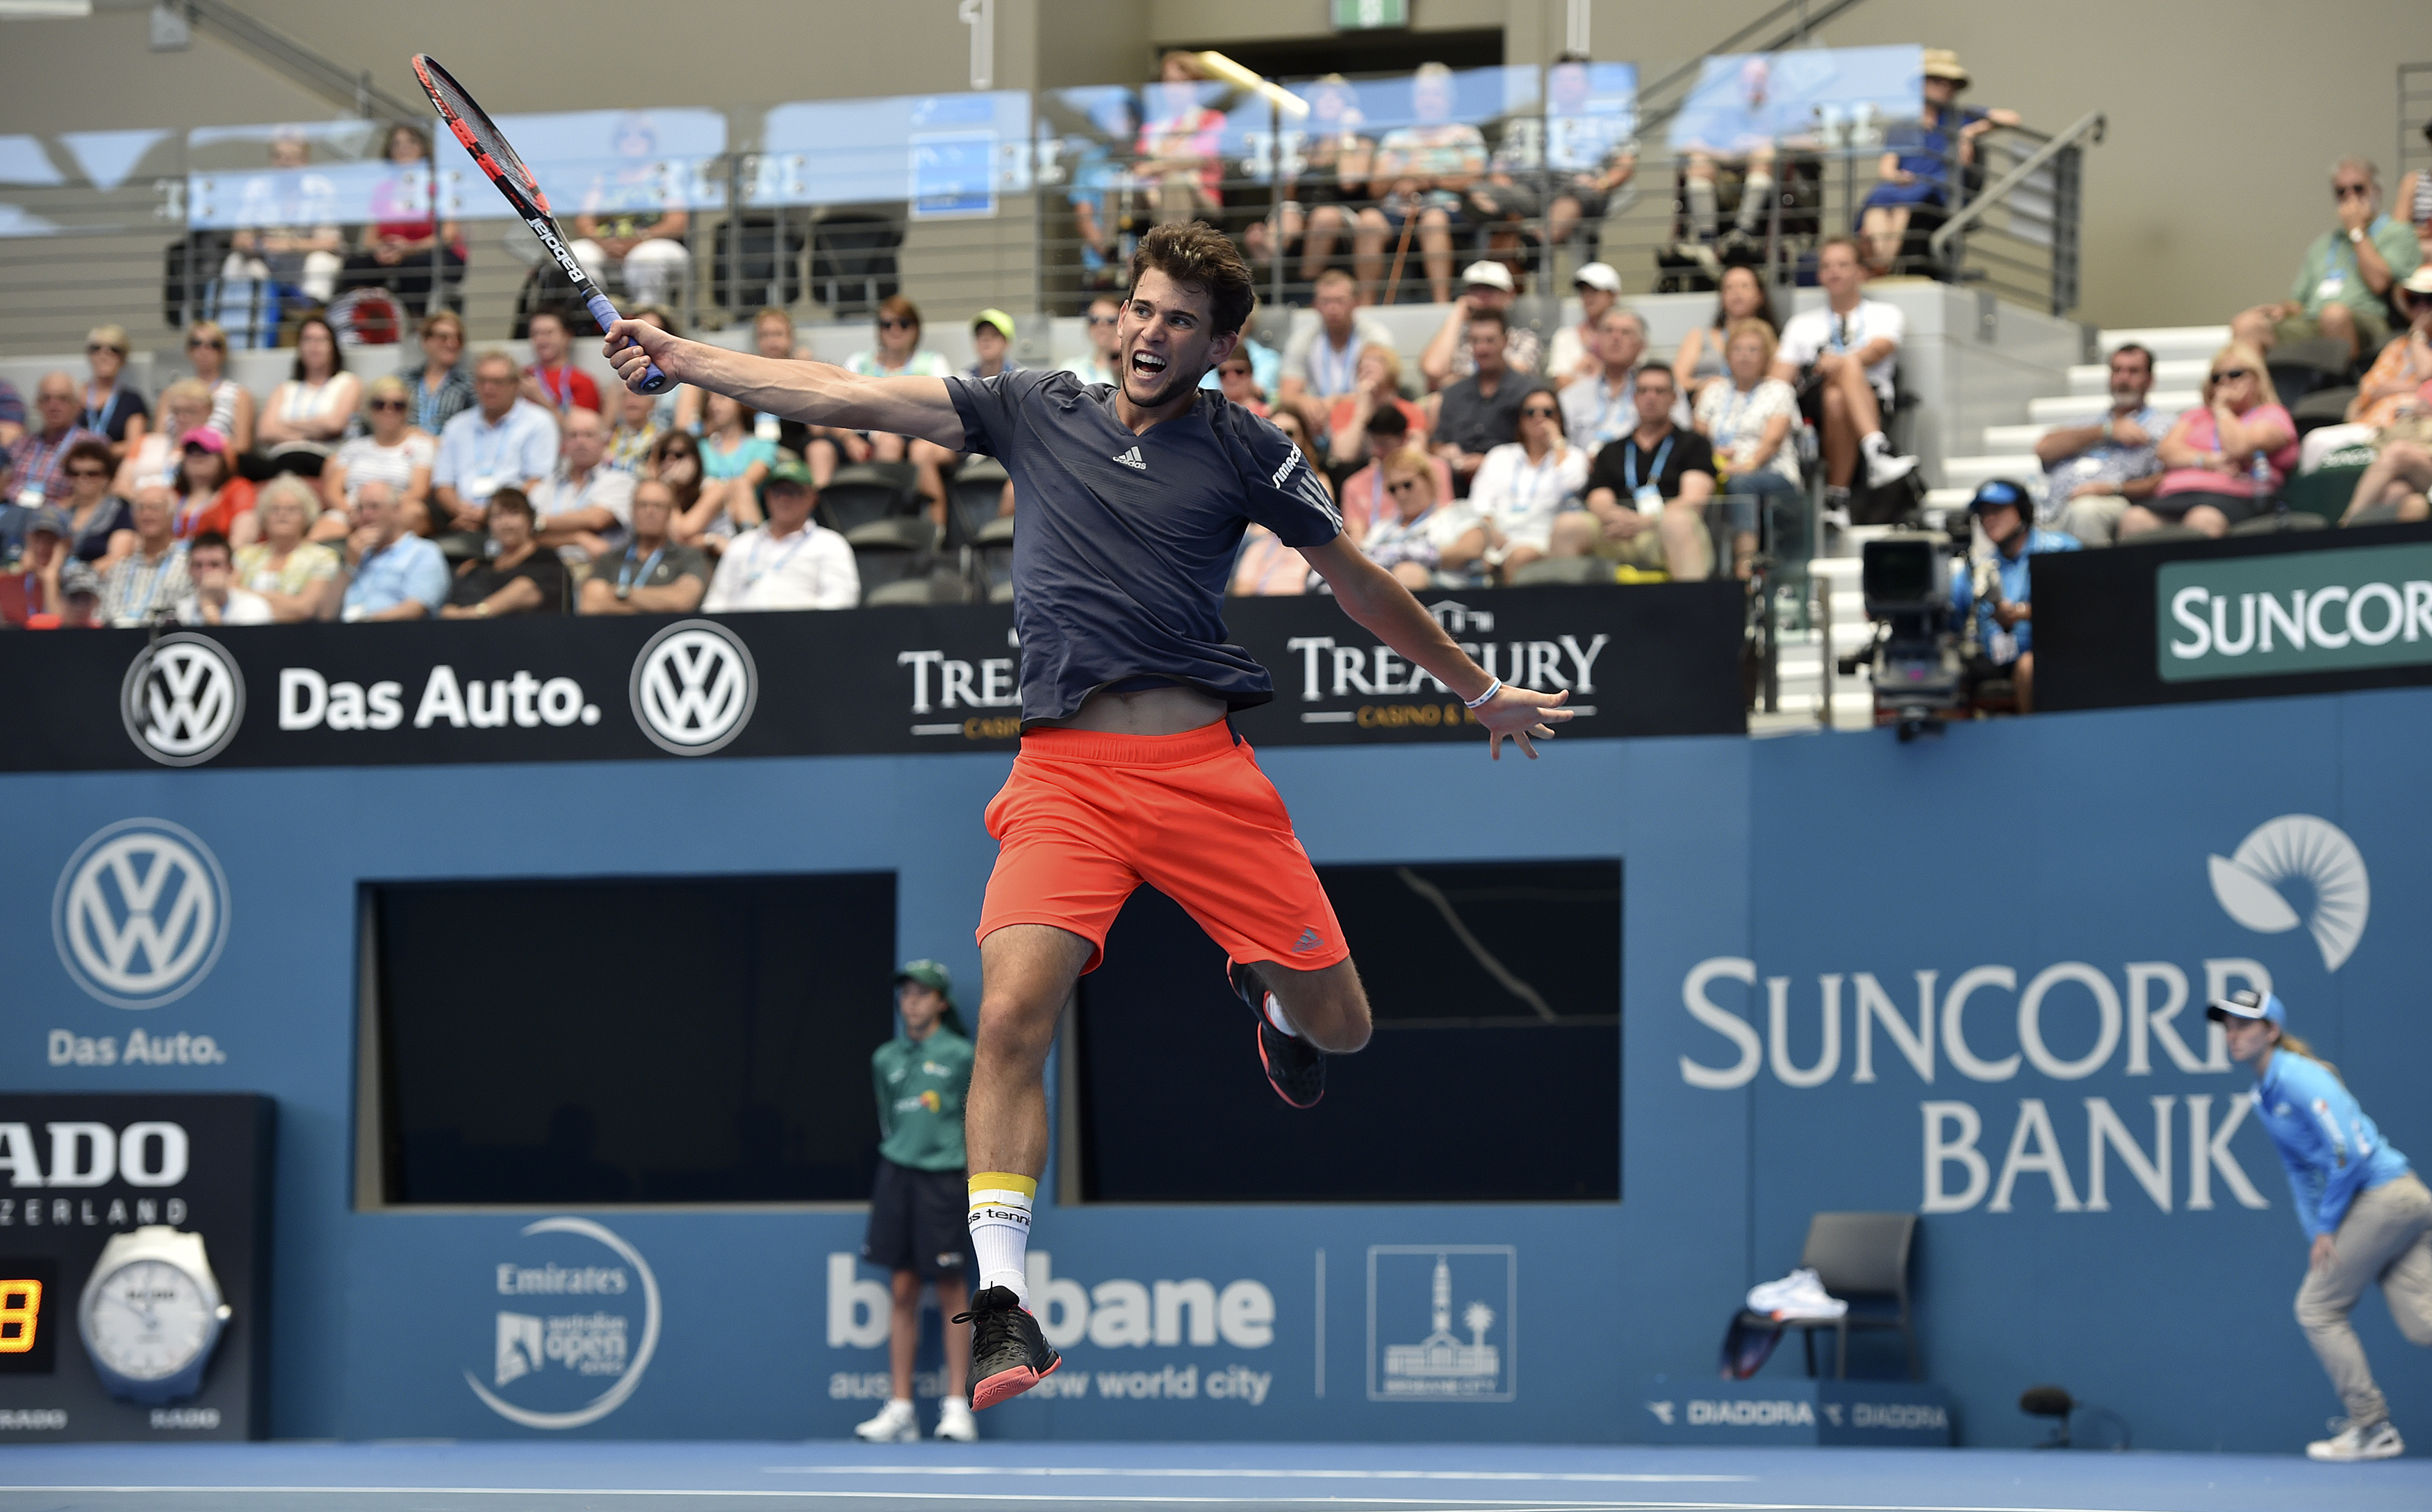 Dominic-Thiem-jump-BH-Brisbane16